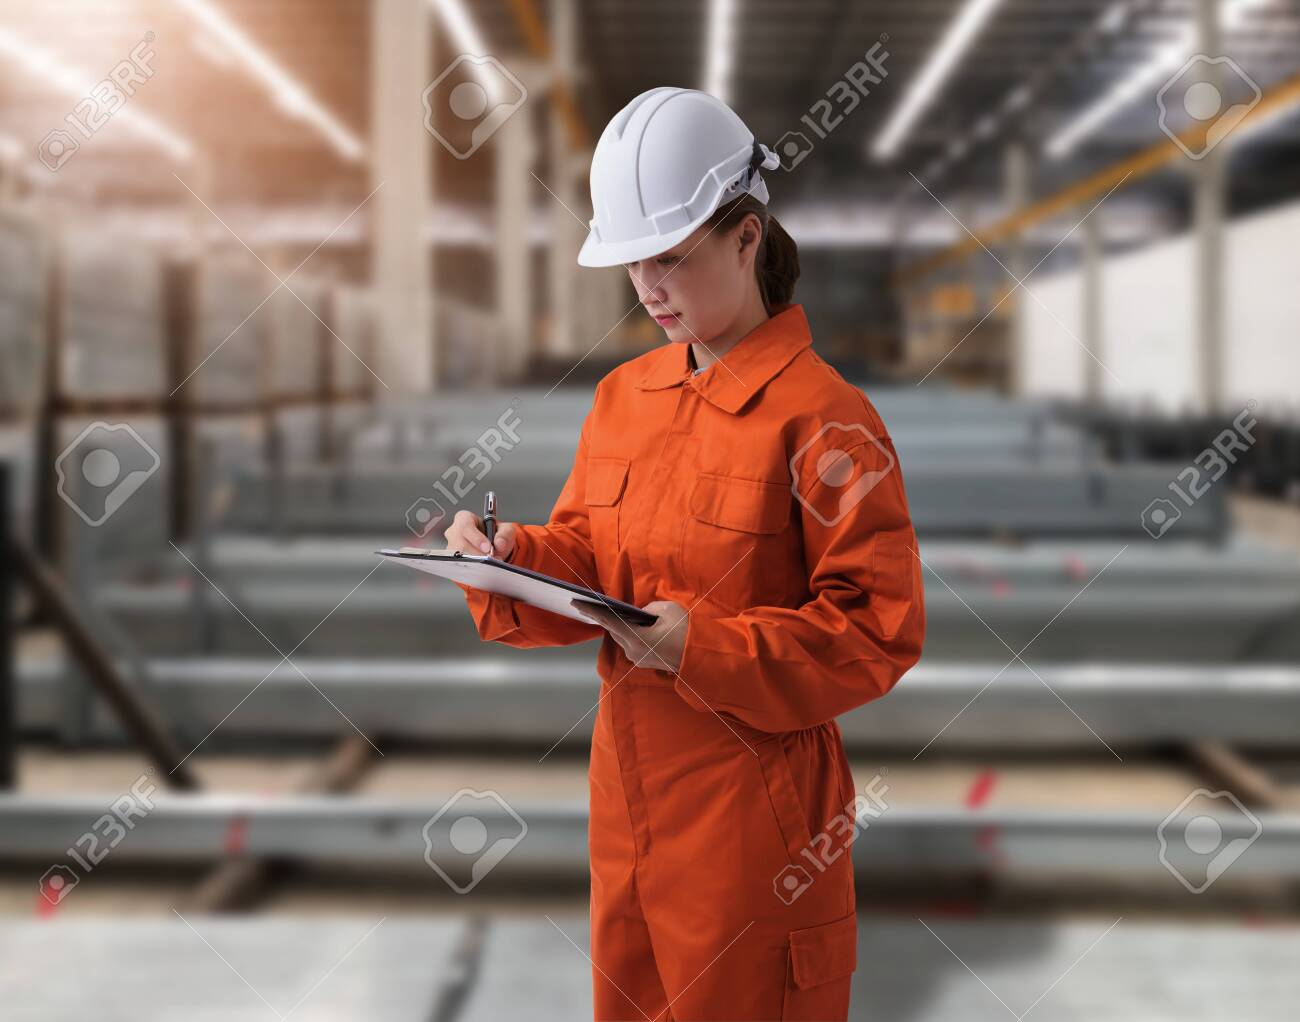 Portrait of Female staff warehouse operator with Blurred the background of Construction material on product shelf in store - 148081570